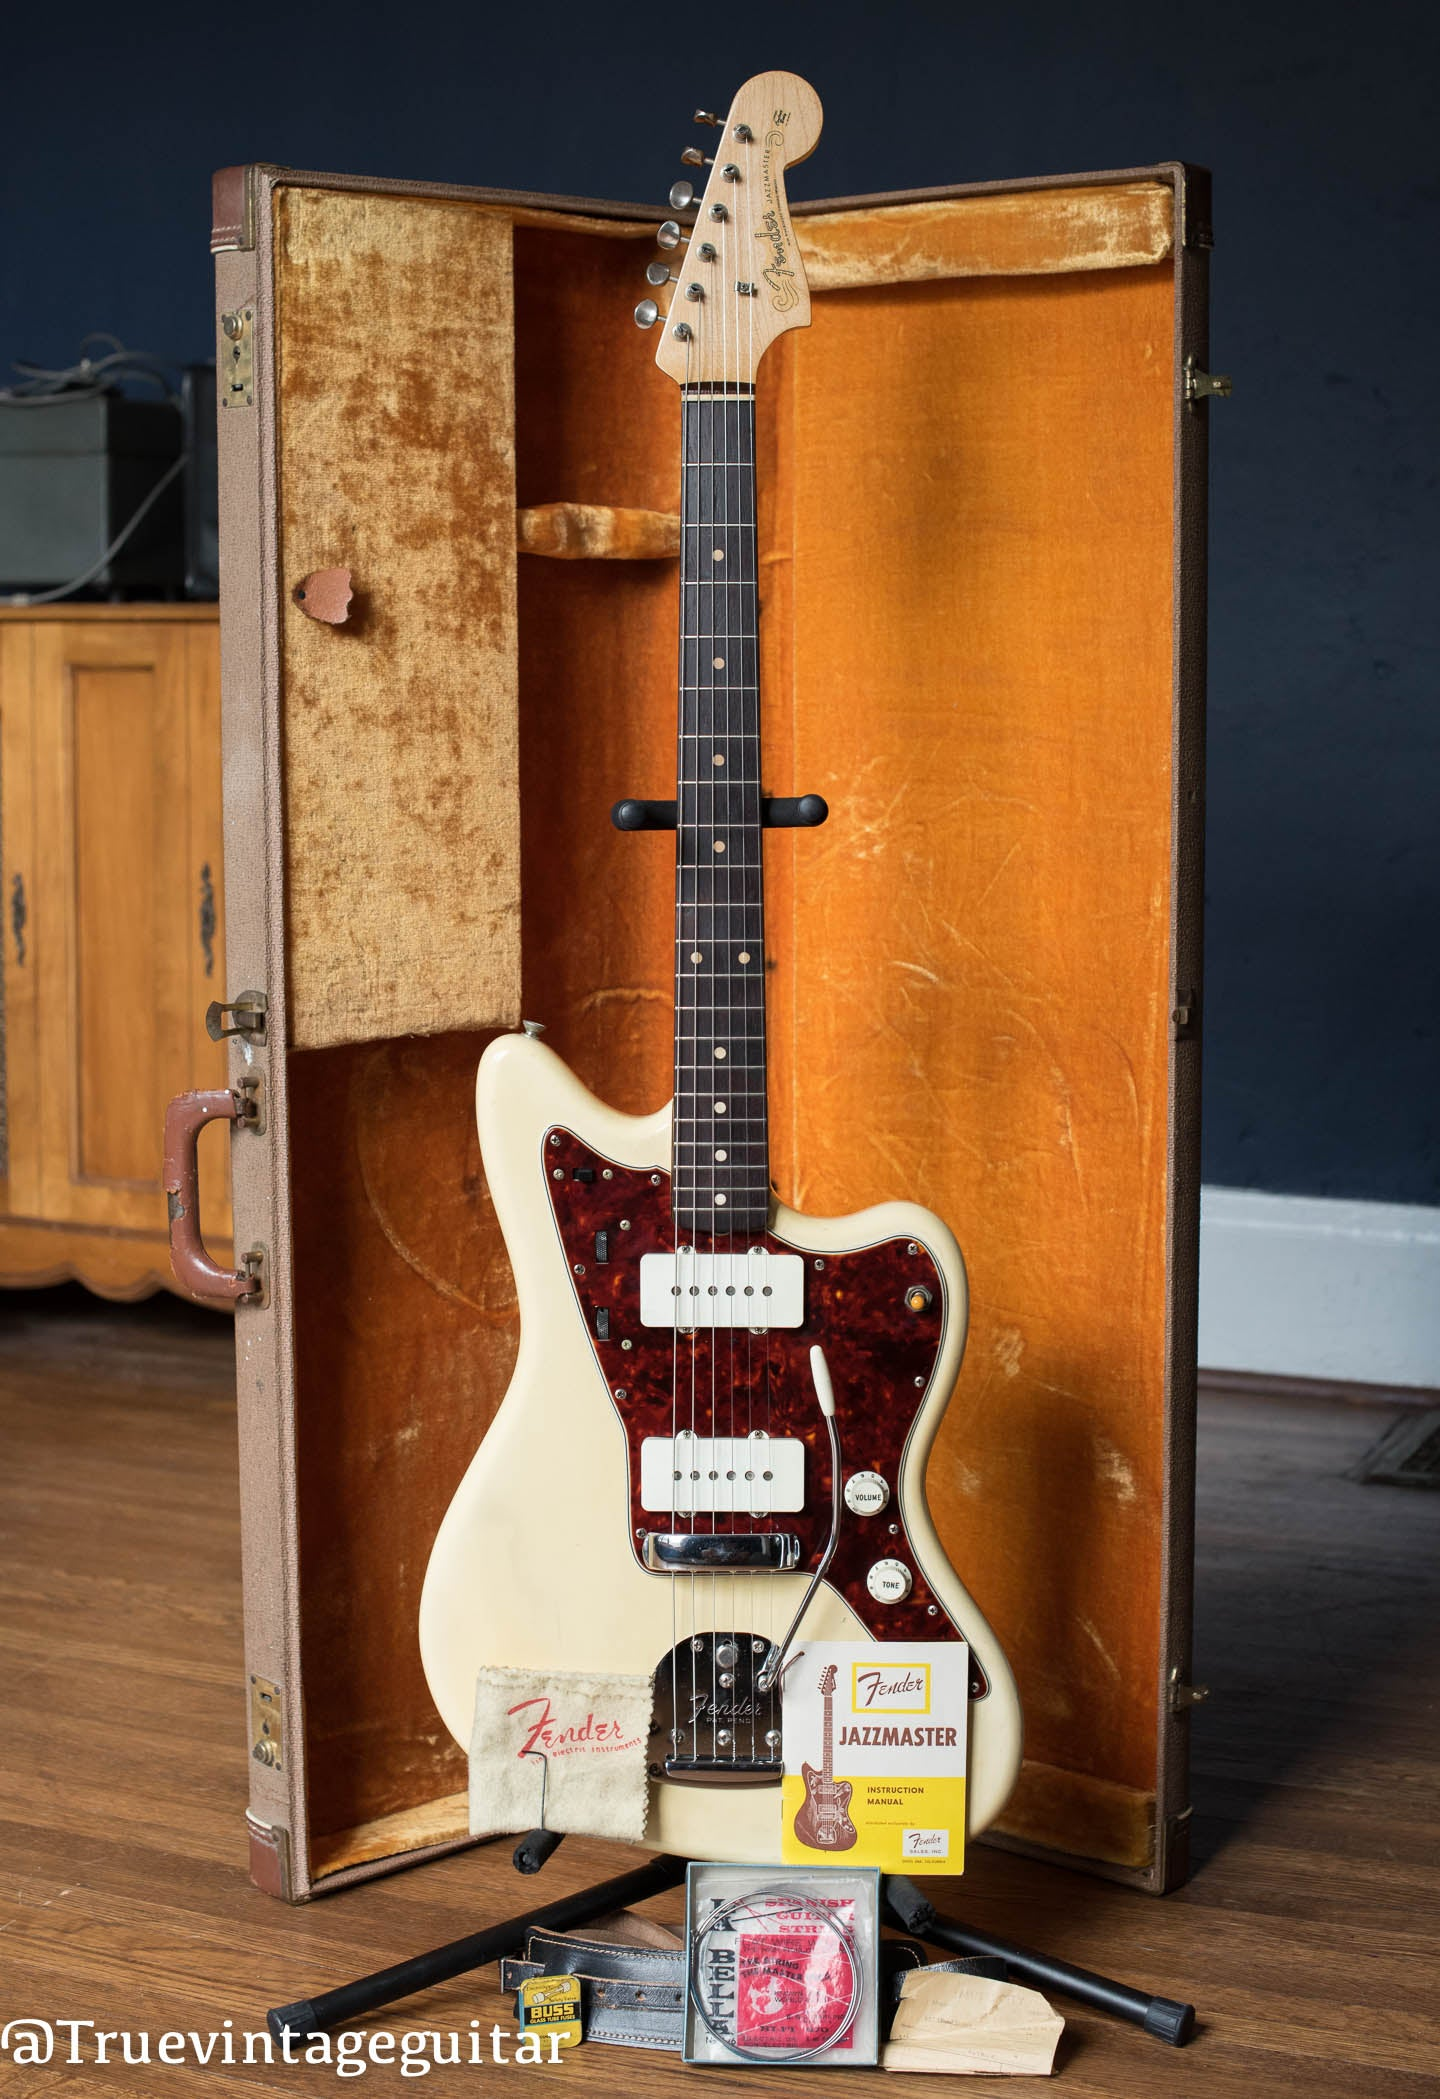 1961 Fender Jazzmaster Blond finish over Ash body with tags